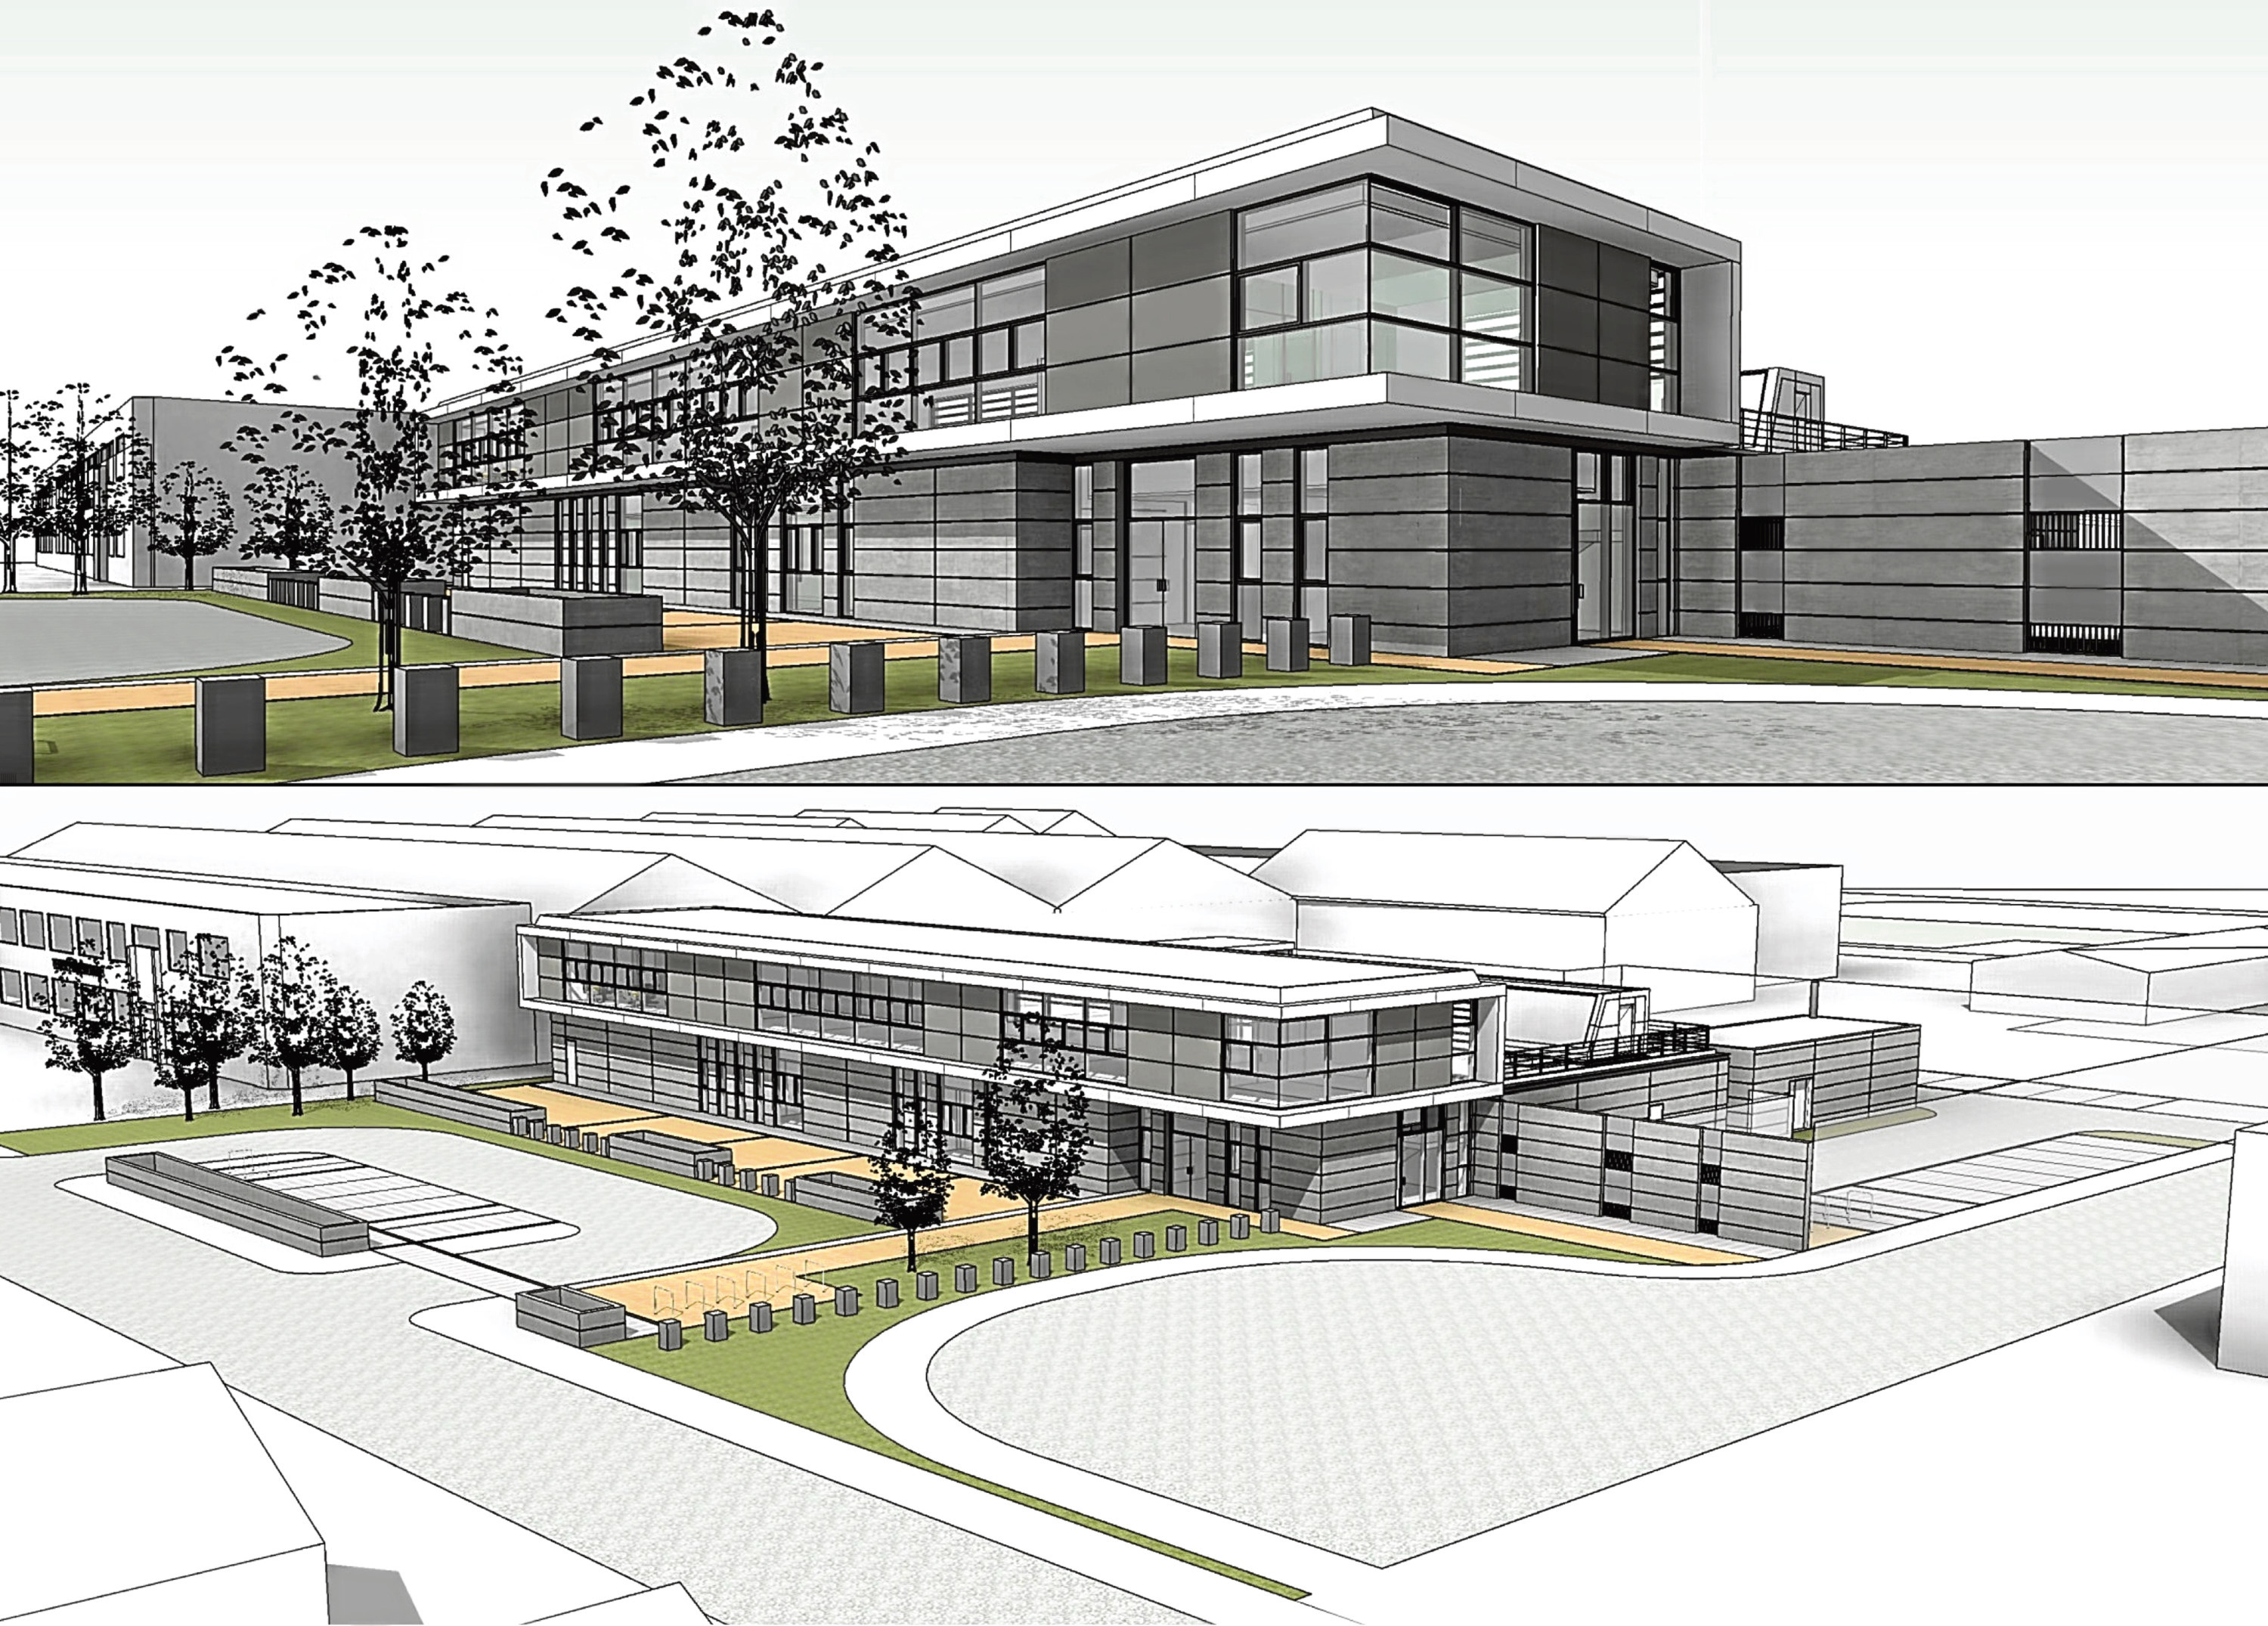 An artist's impression of the new police station planned for Peterhead